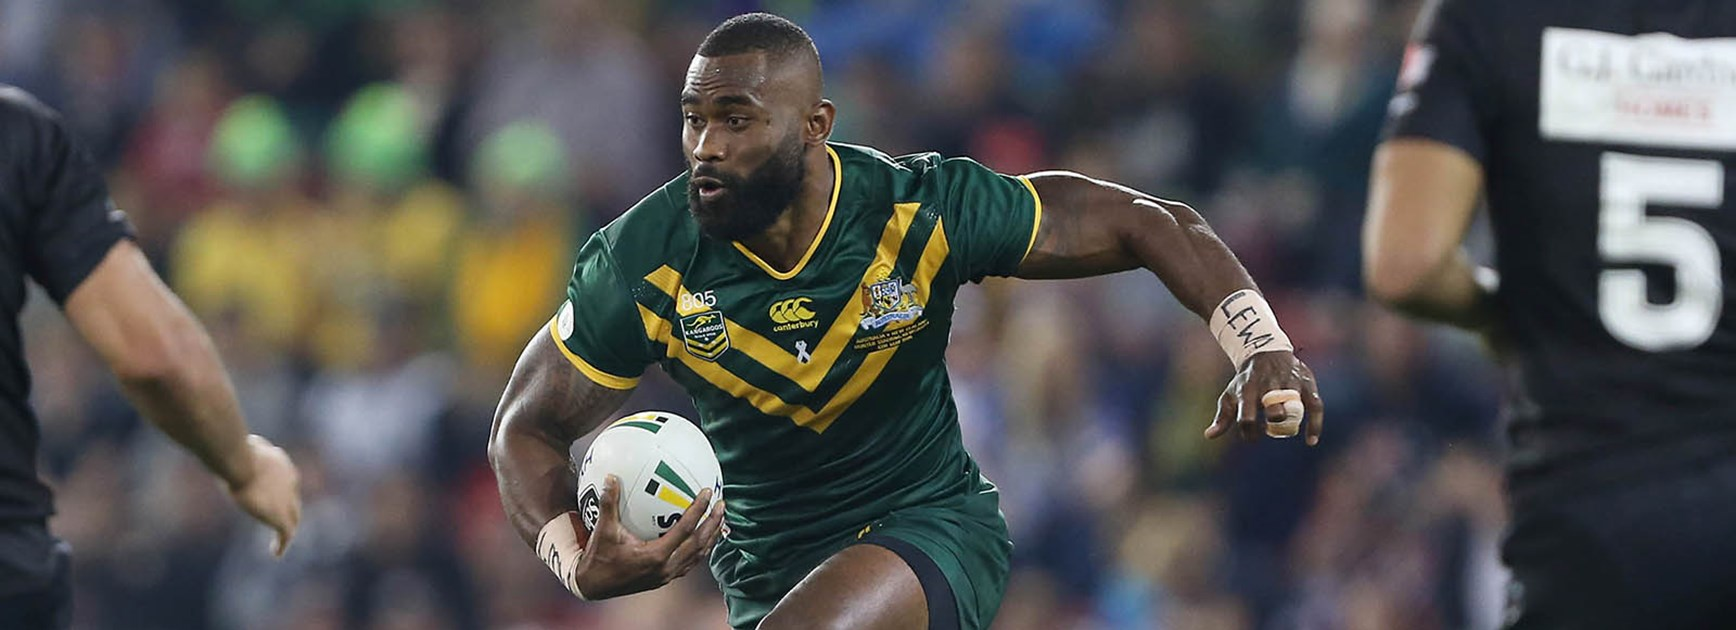 Semi Radradra had a mixed night on his Kangaroos debut.